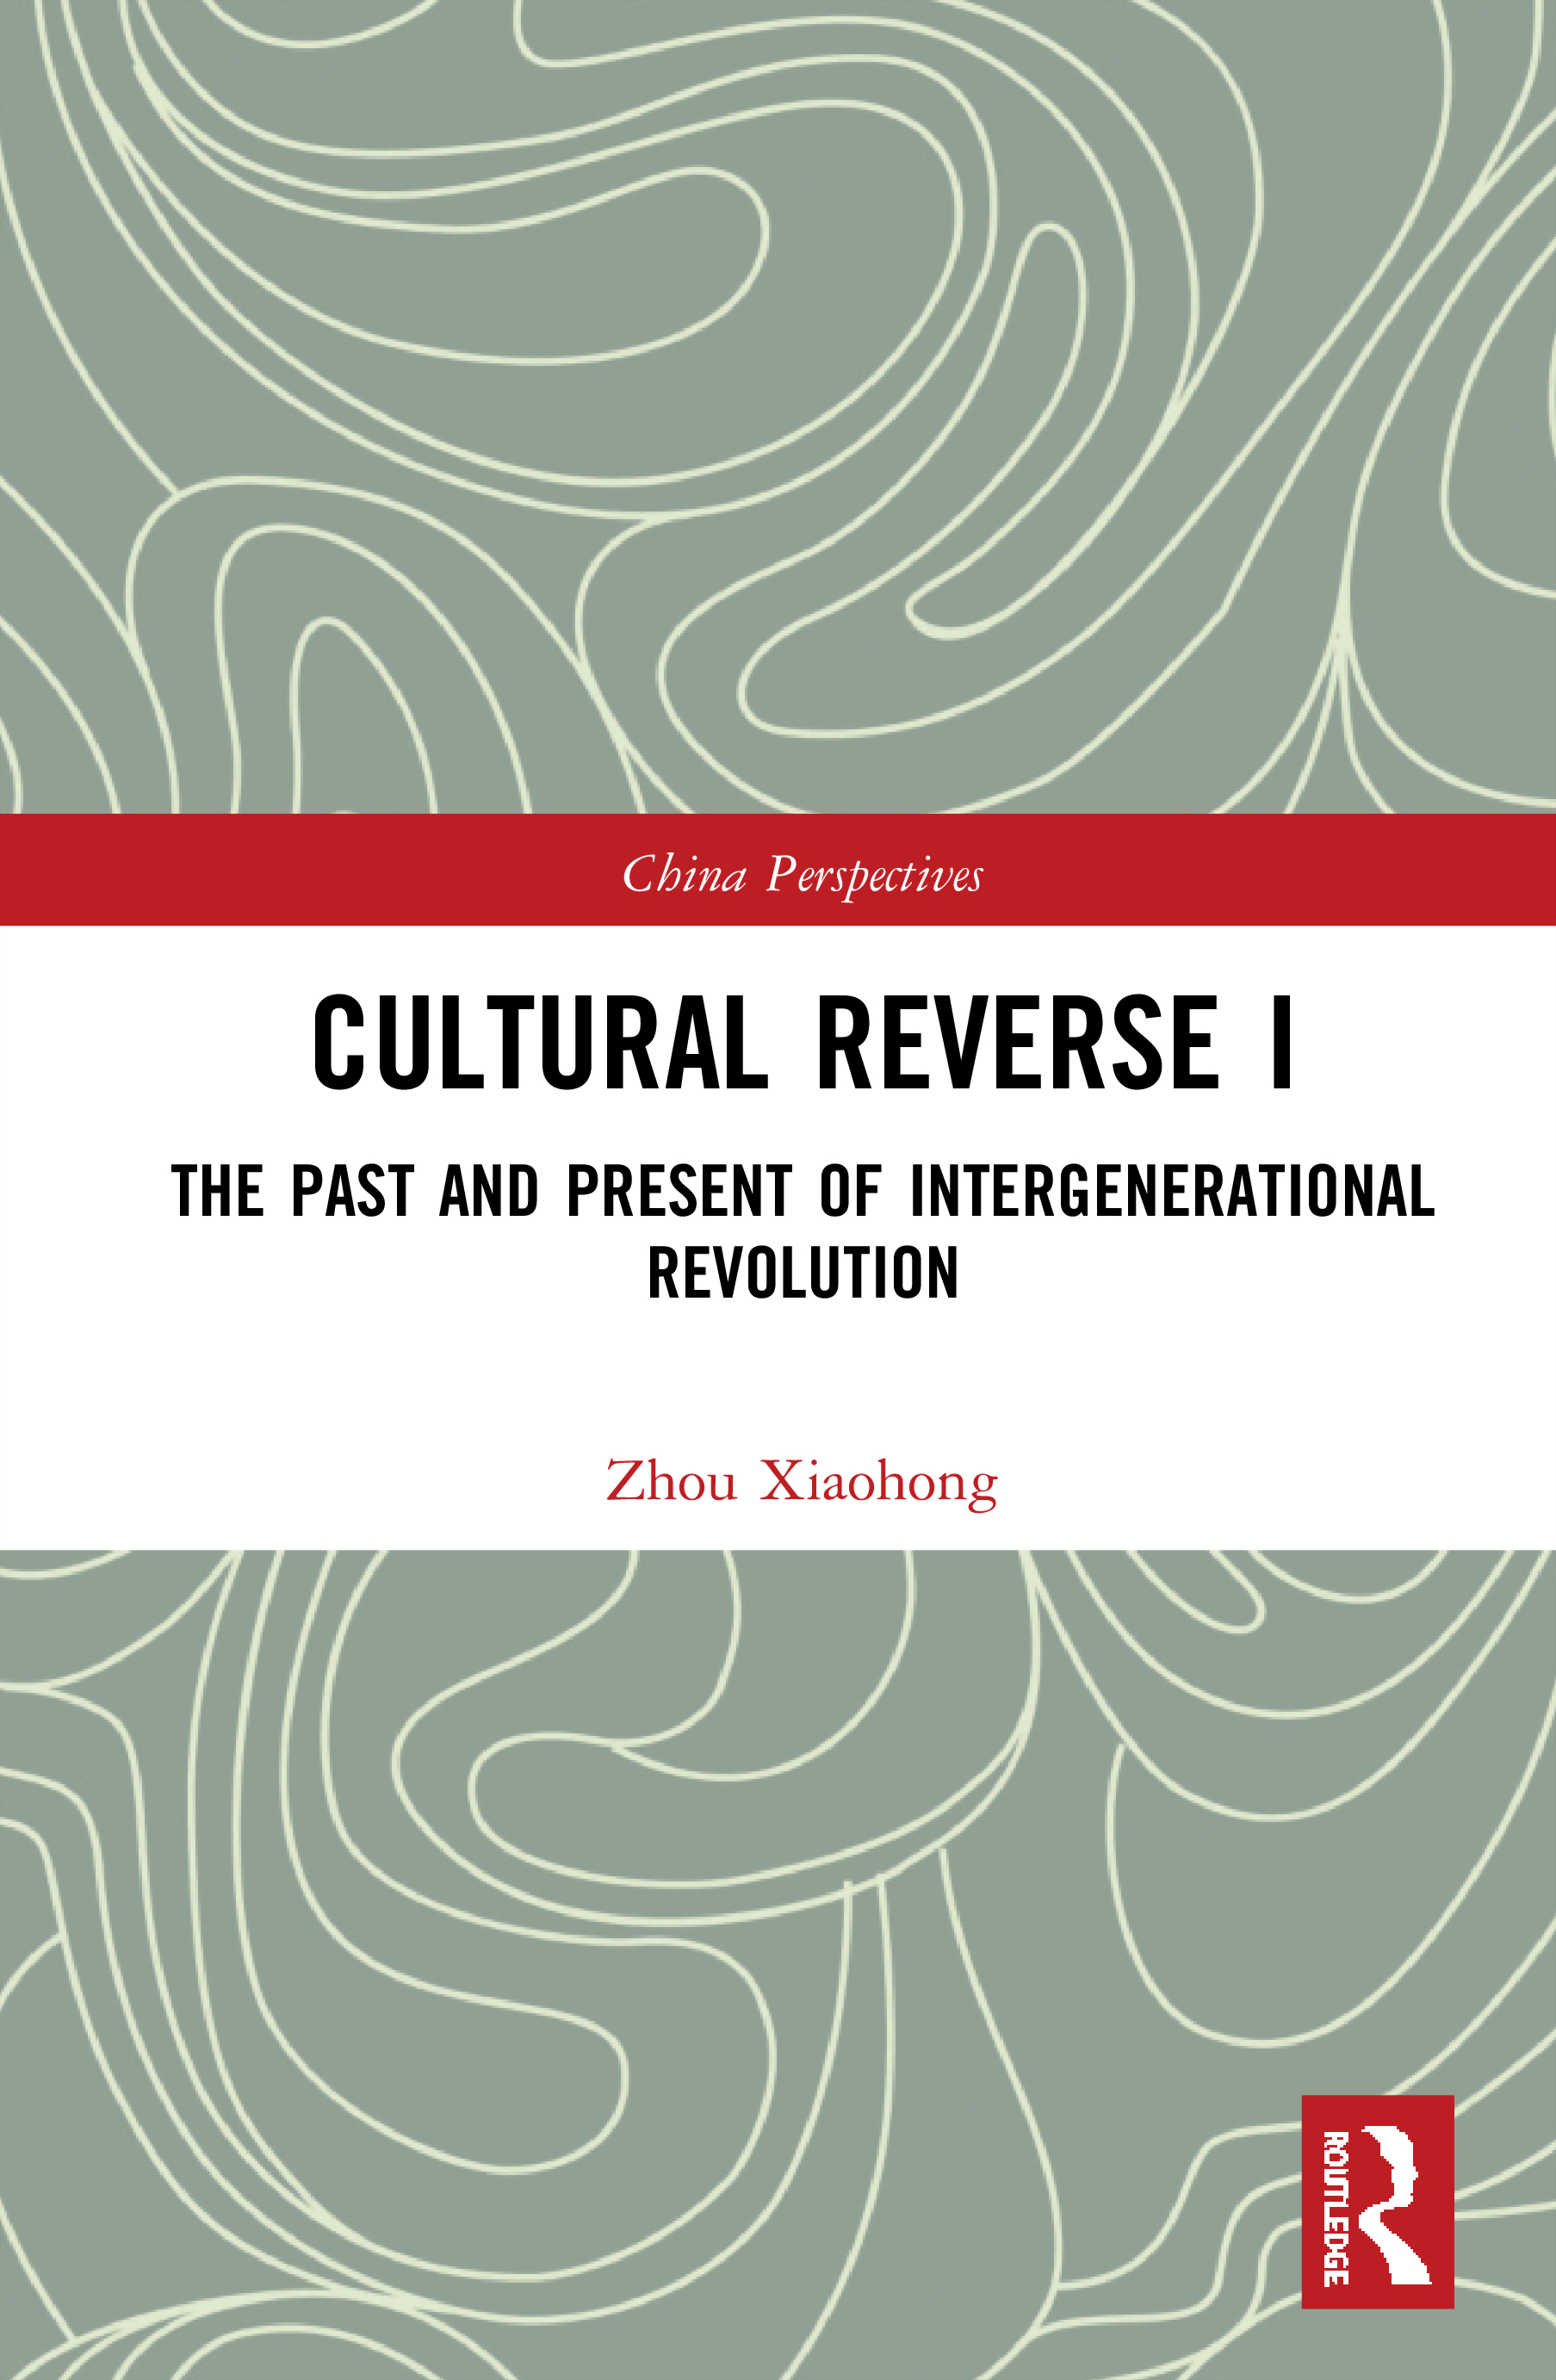 Cultural Reverse I: The Past and Present of Intergenerational Revolution book cover